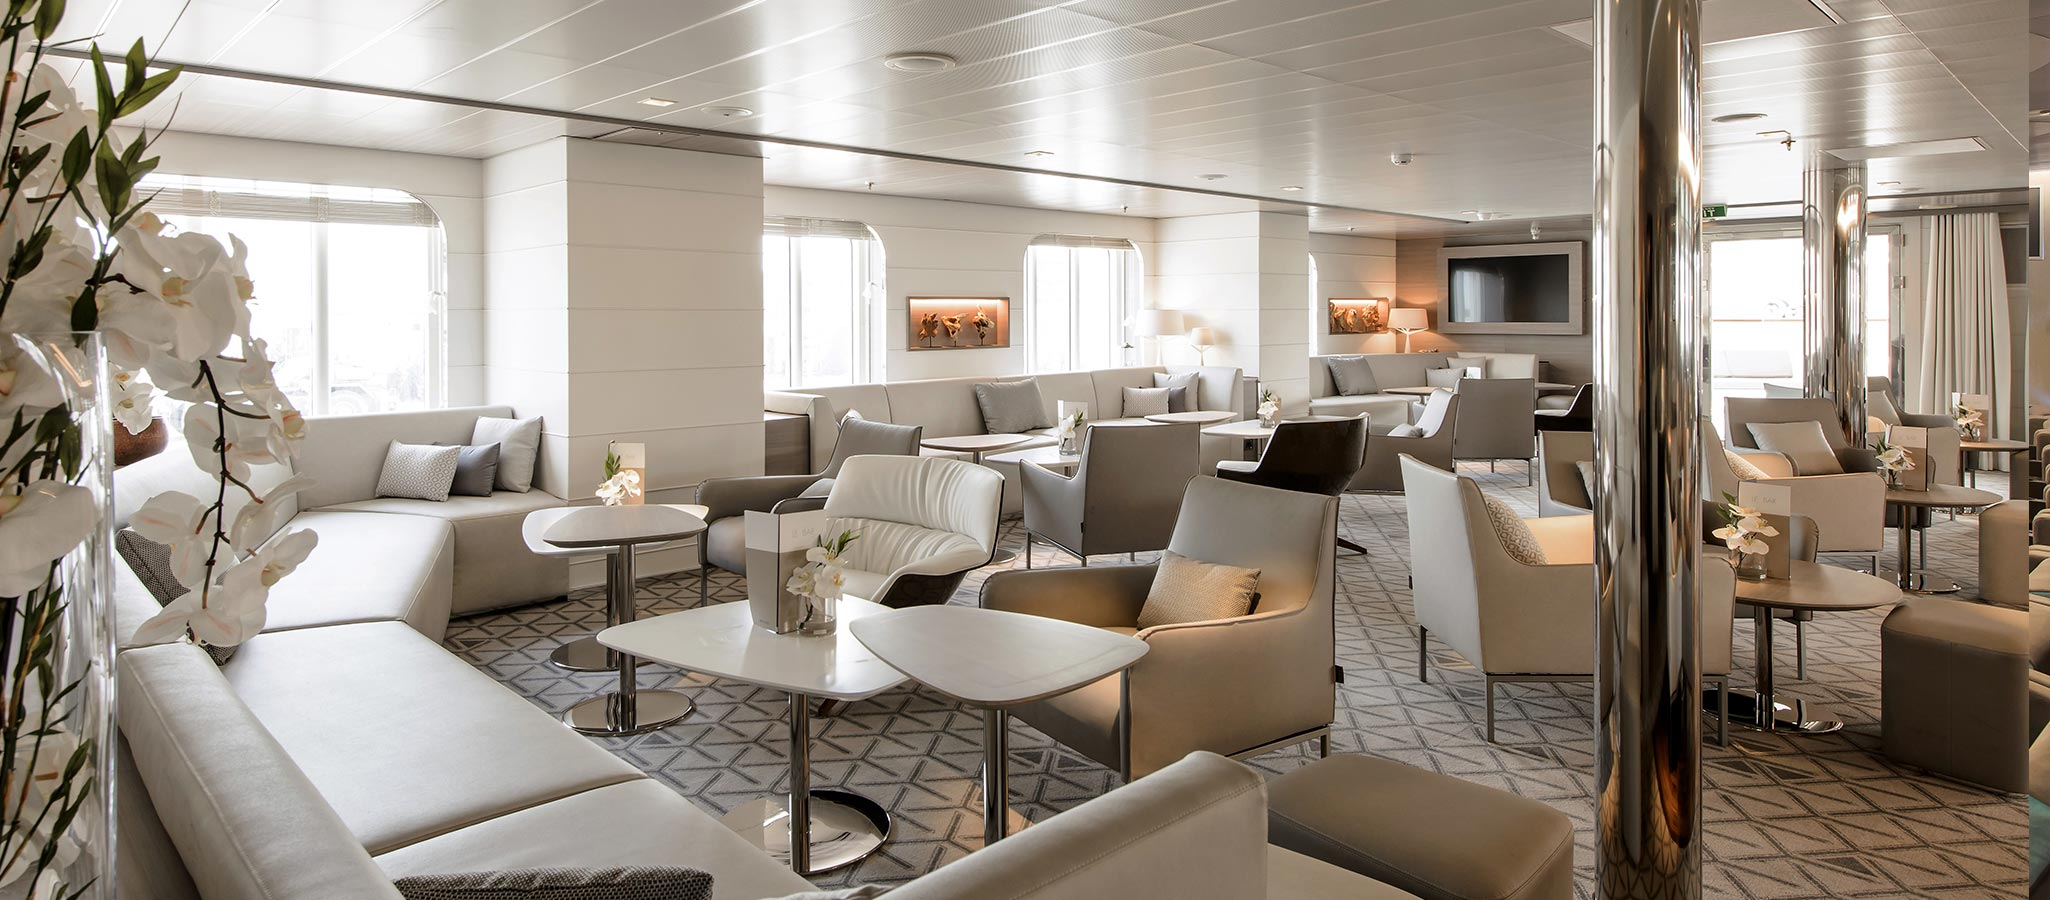 The classy lounges on board serve for break-out sessions and meetings on a small scale.